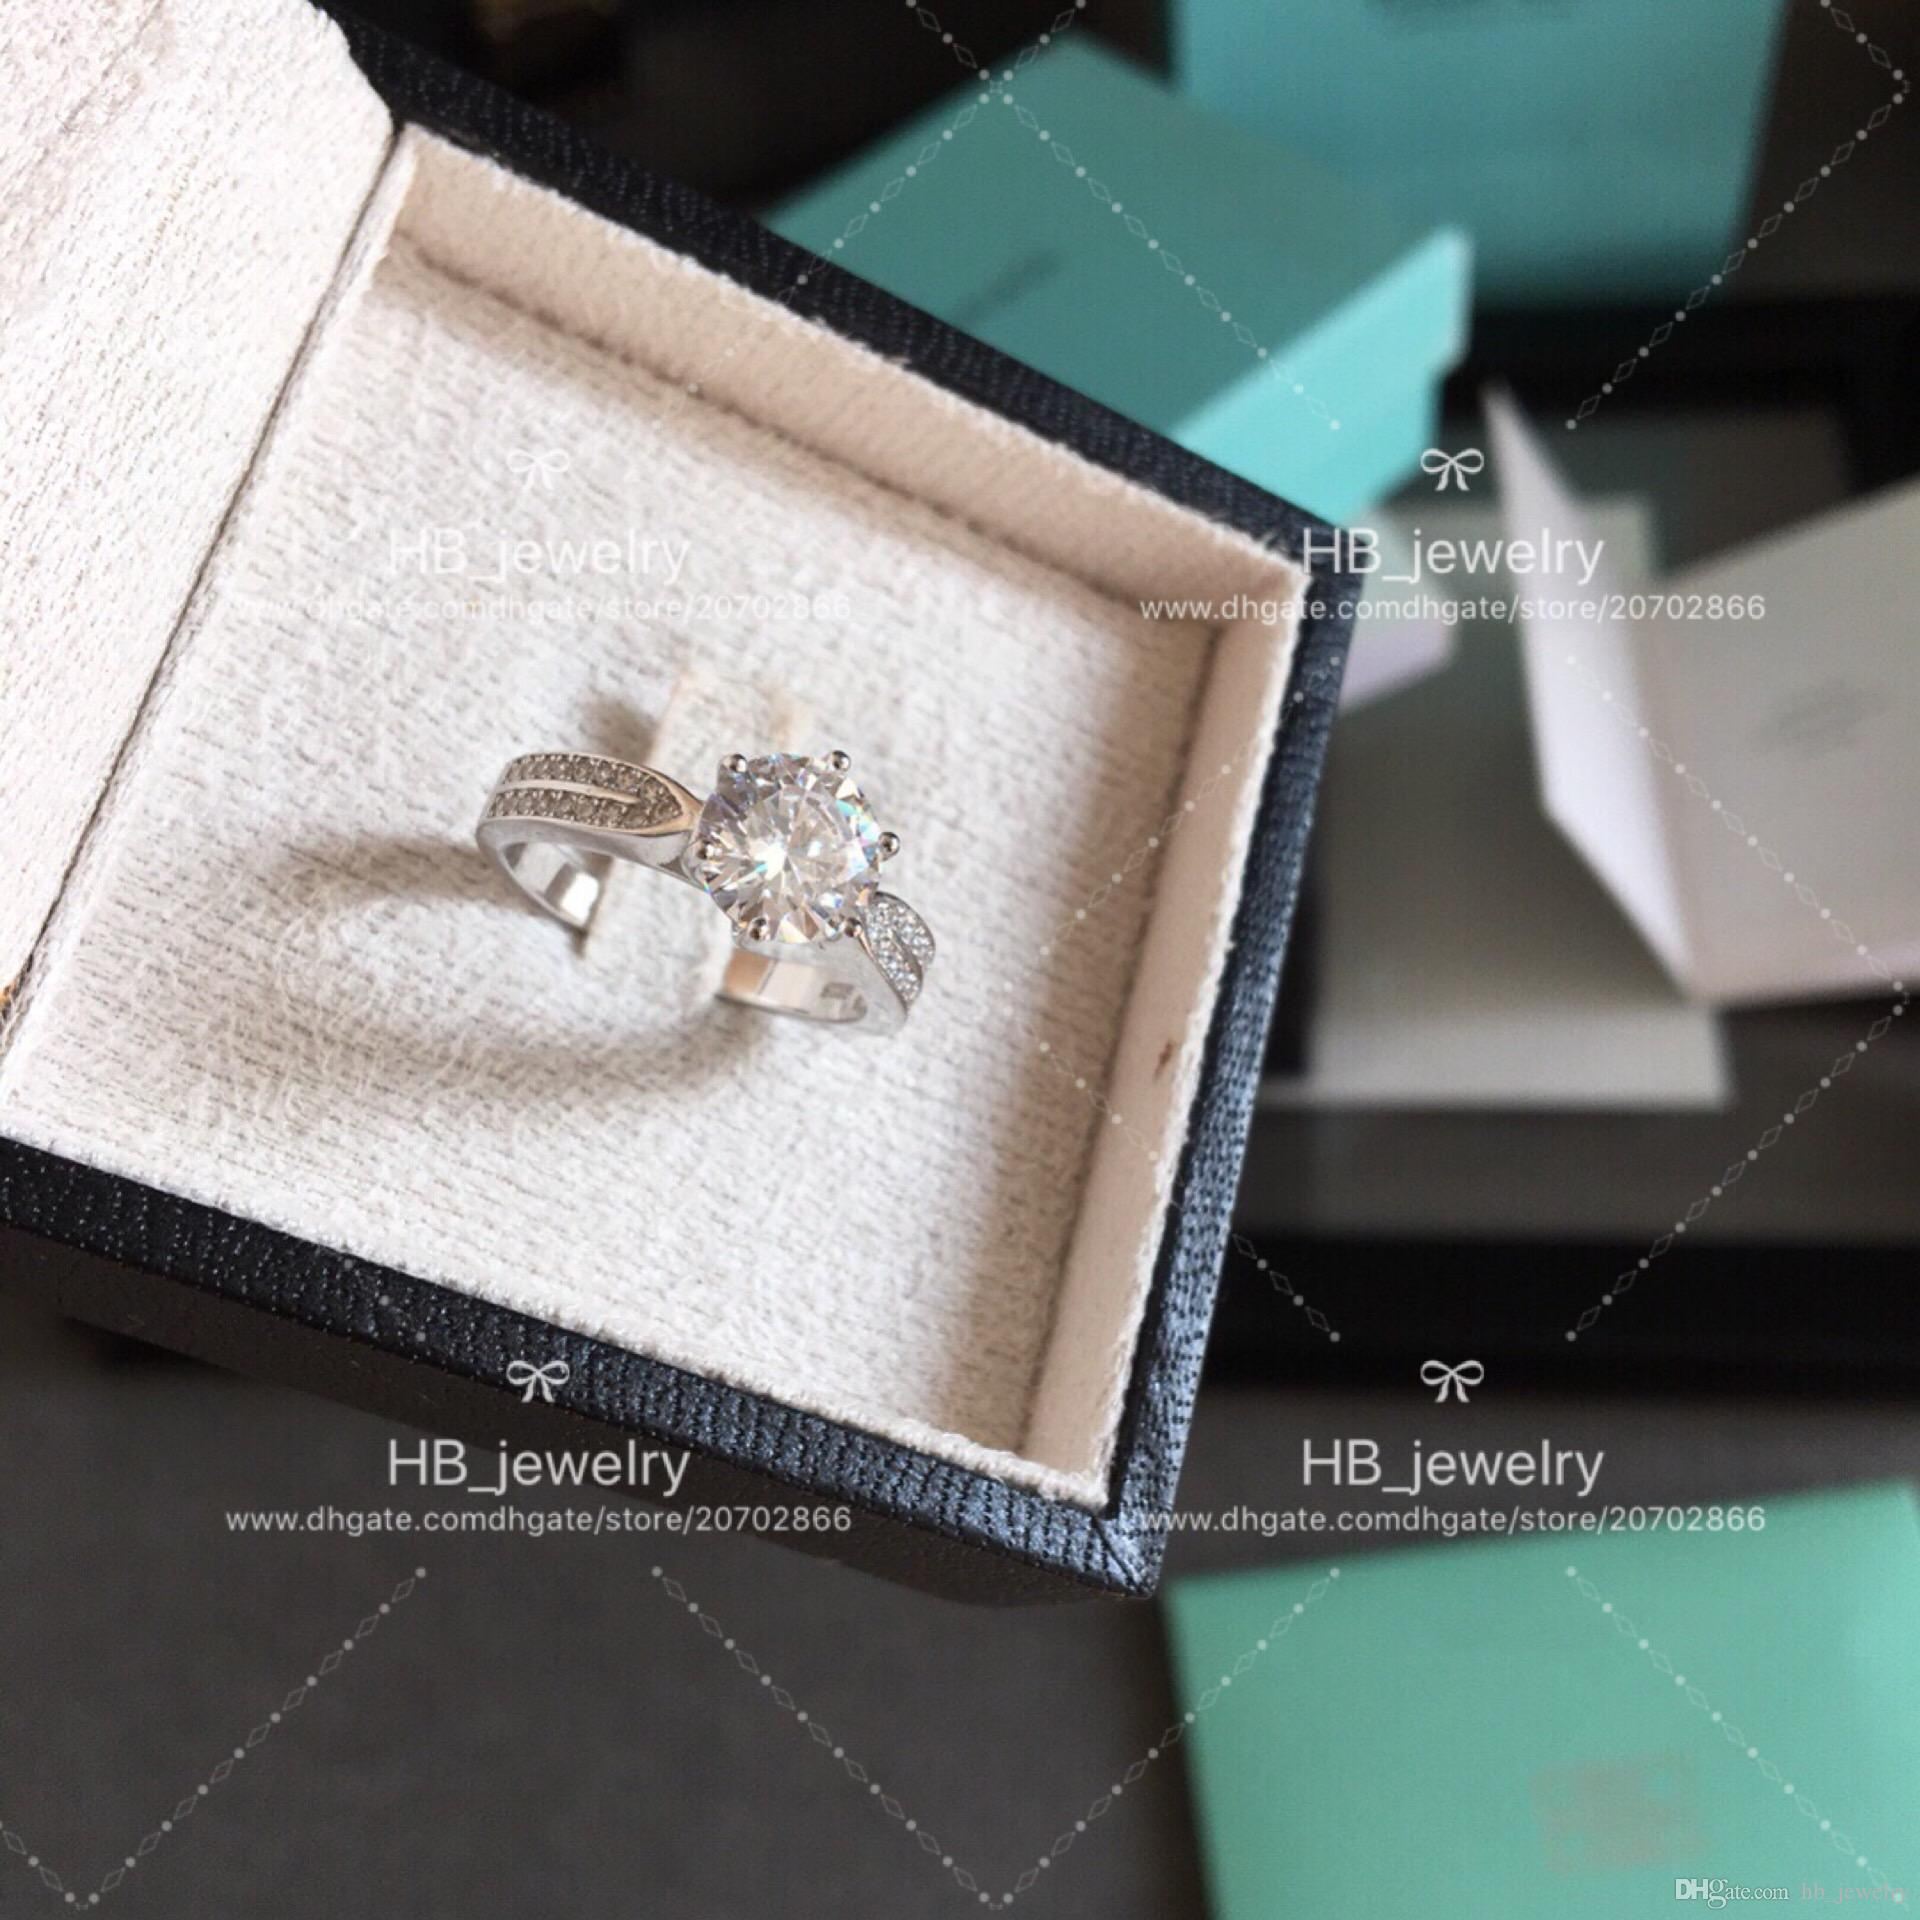 couple high wedding ring t engagement claw marry with silver version from luxury gift six women brand karat rings diamond product box